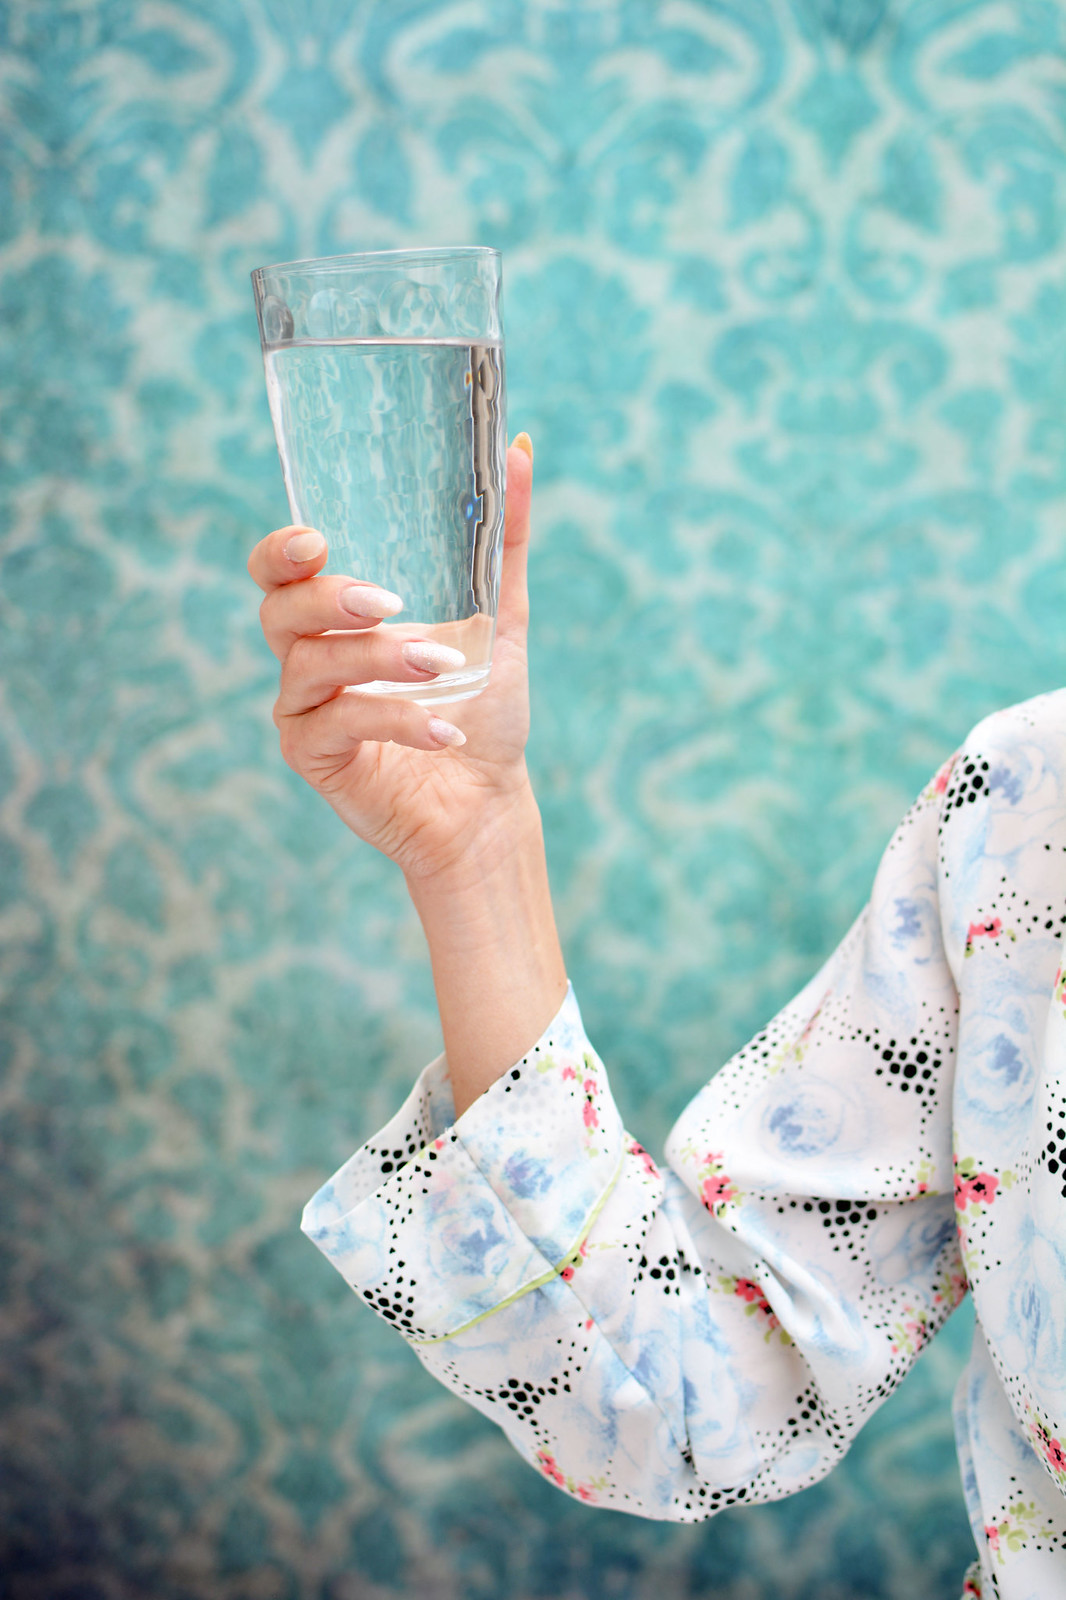 How to Optimise Your Skincare Routine to Fight Ageing | Drink Plenty of Water